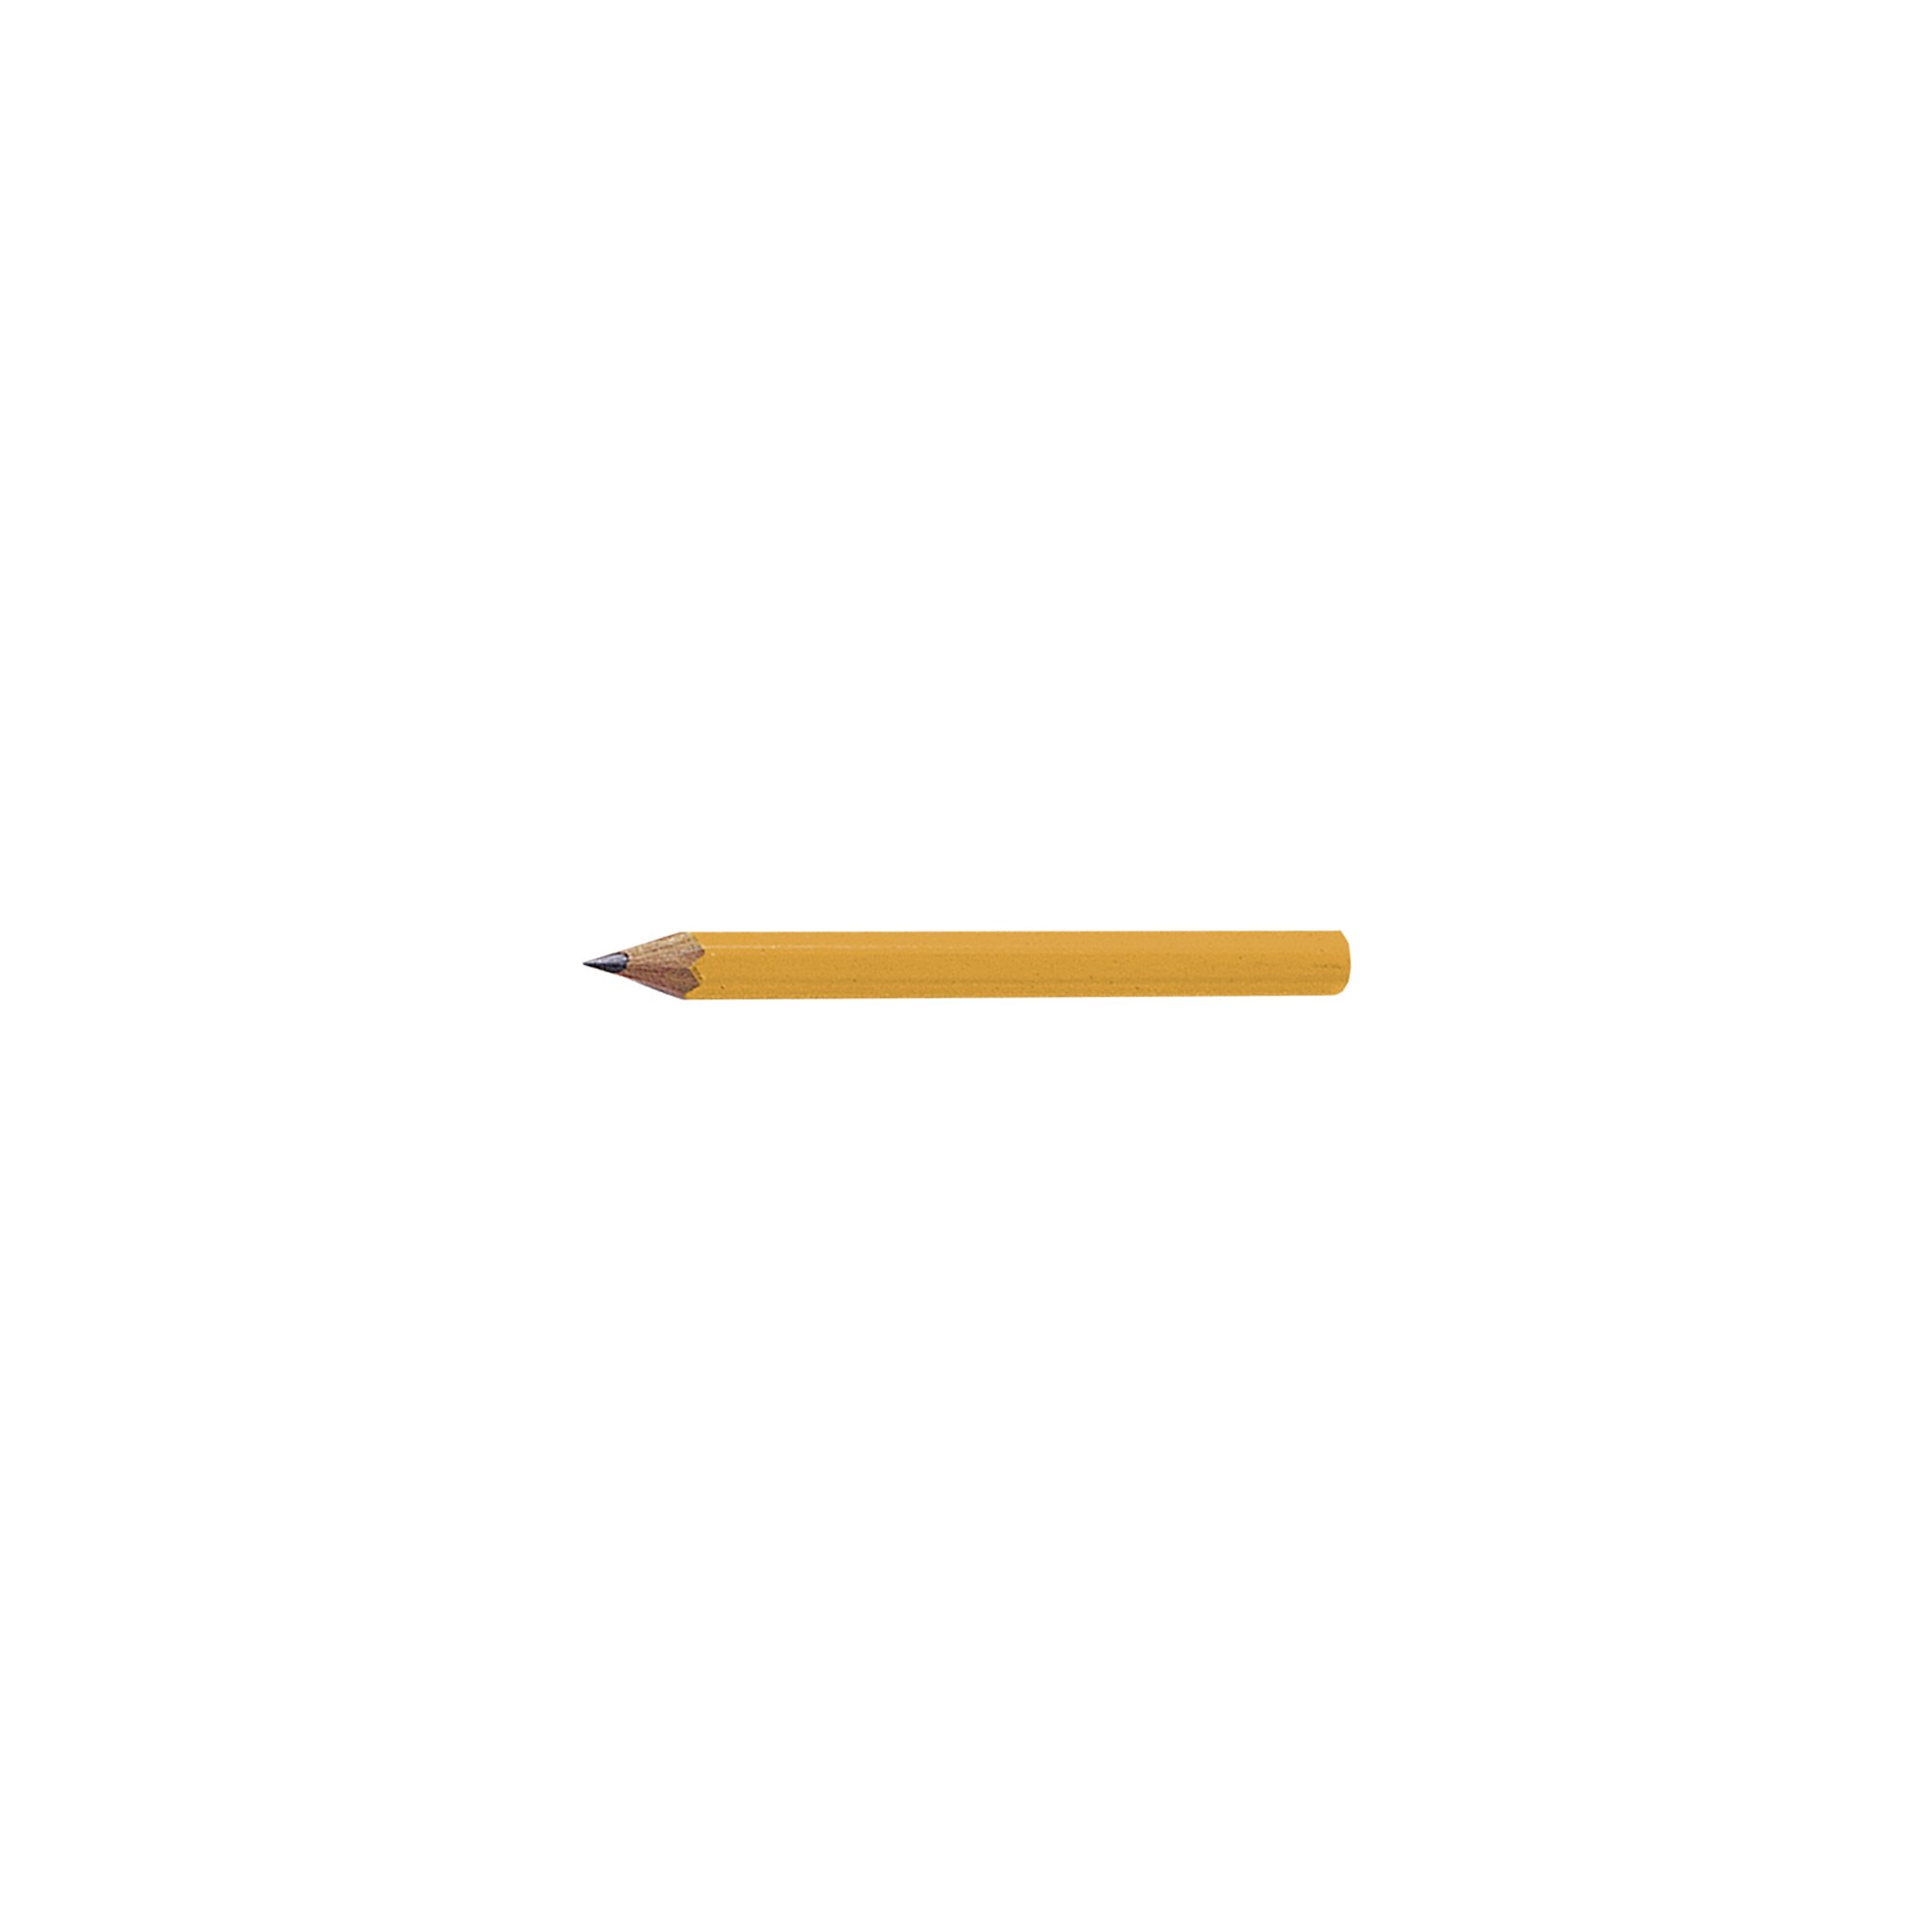 Dixon Golf Pencils, #2 HB Soft, Pre-Sharpened, Yellow, 144 Count (14998) by Dixon (Image #4)